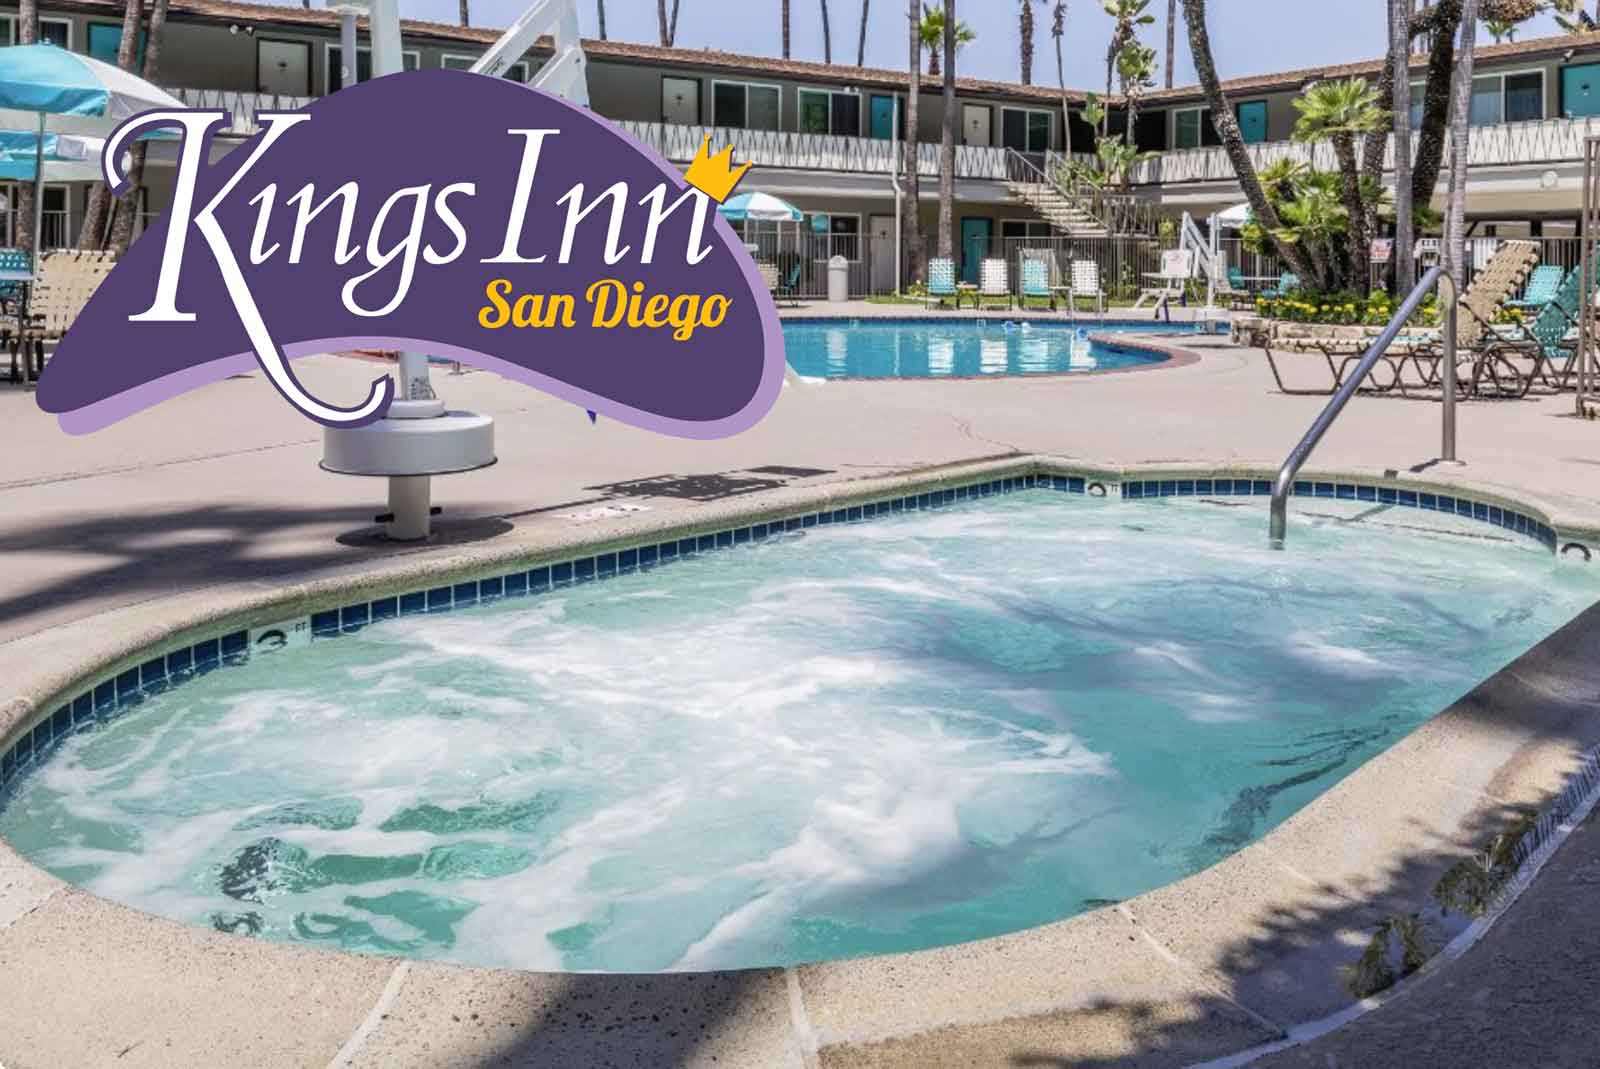 San Diego Hotel with Hot Tub — Kings Inn San Diego™